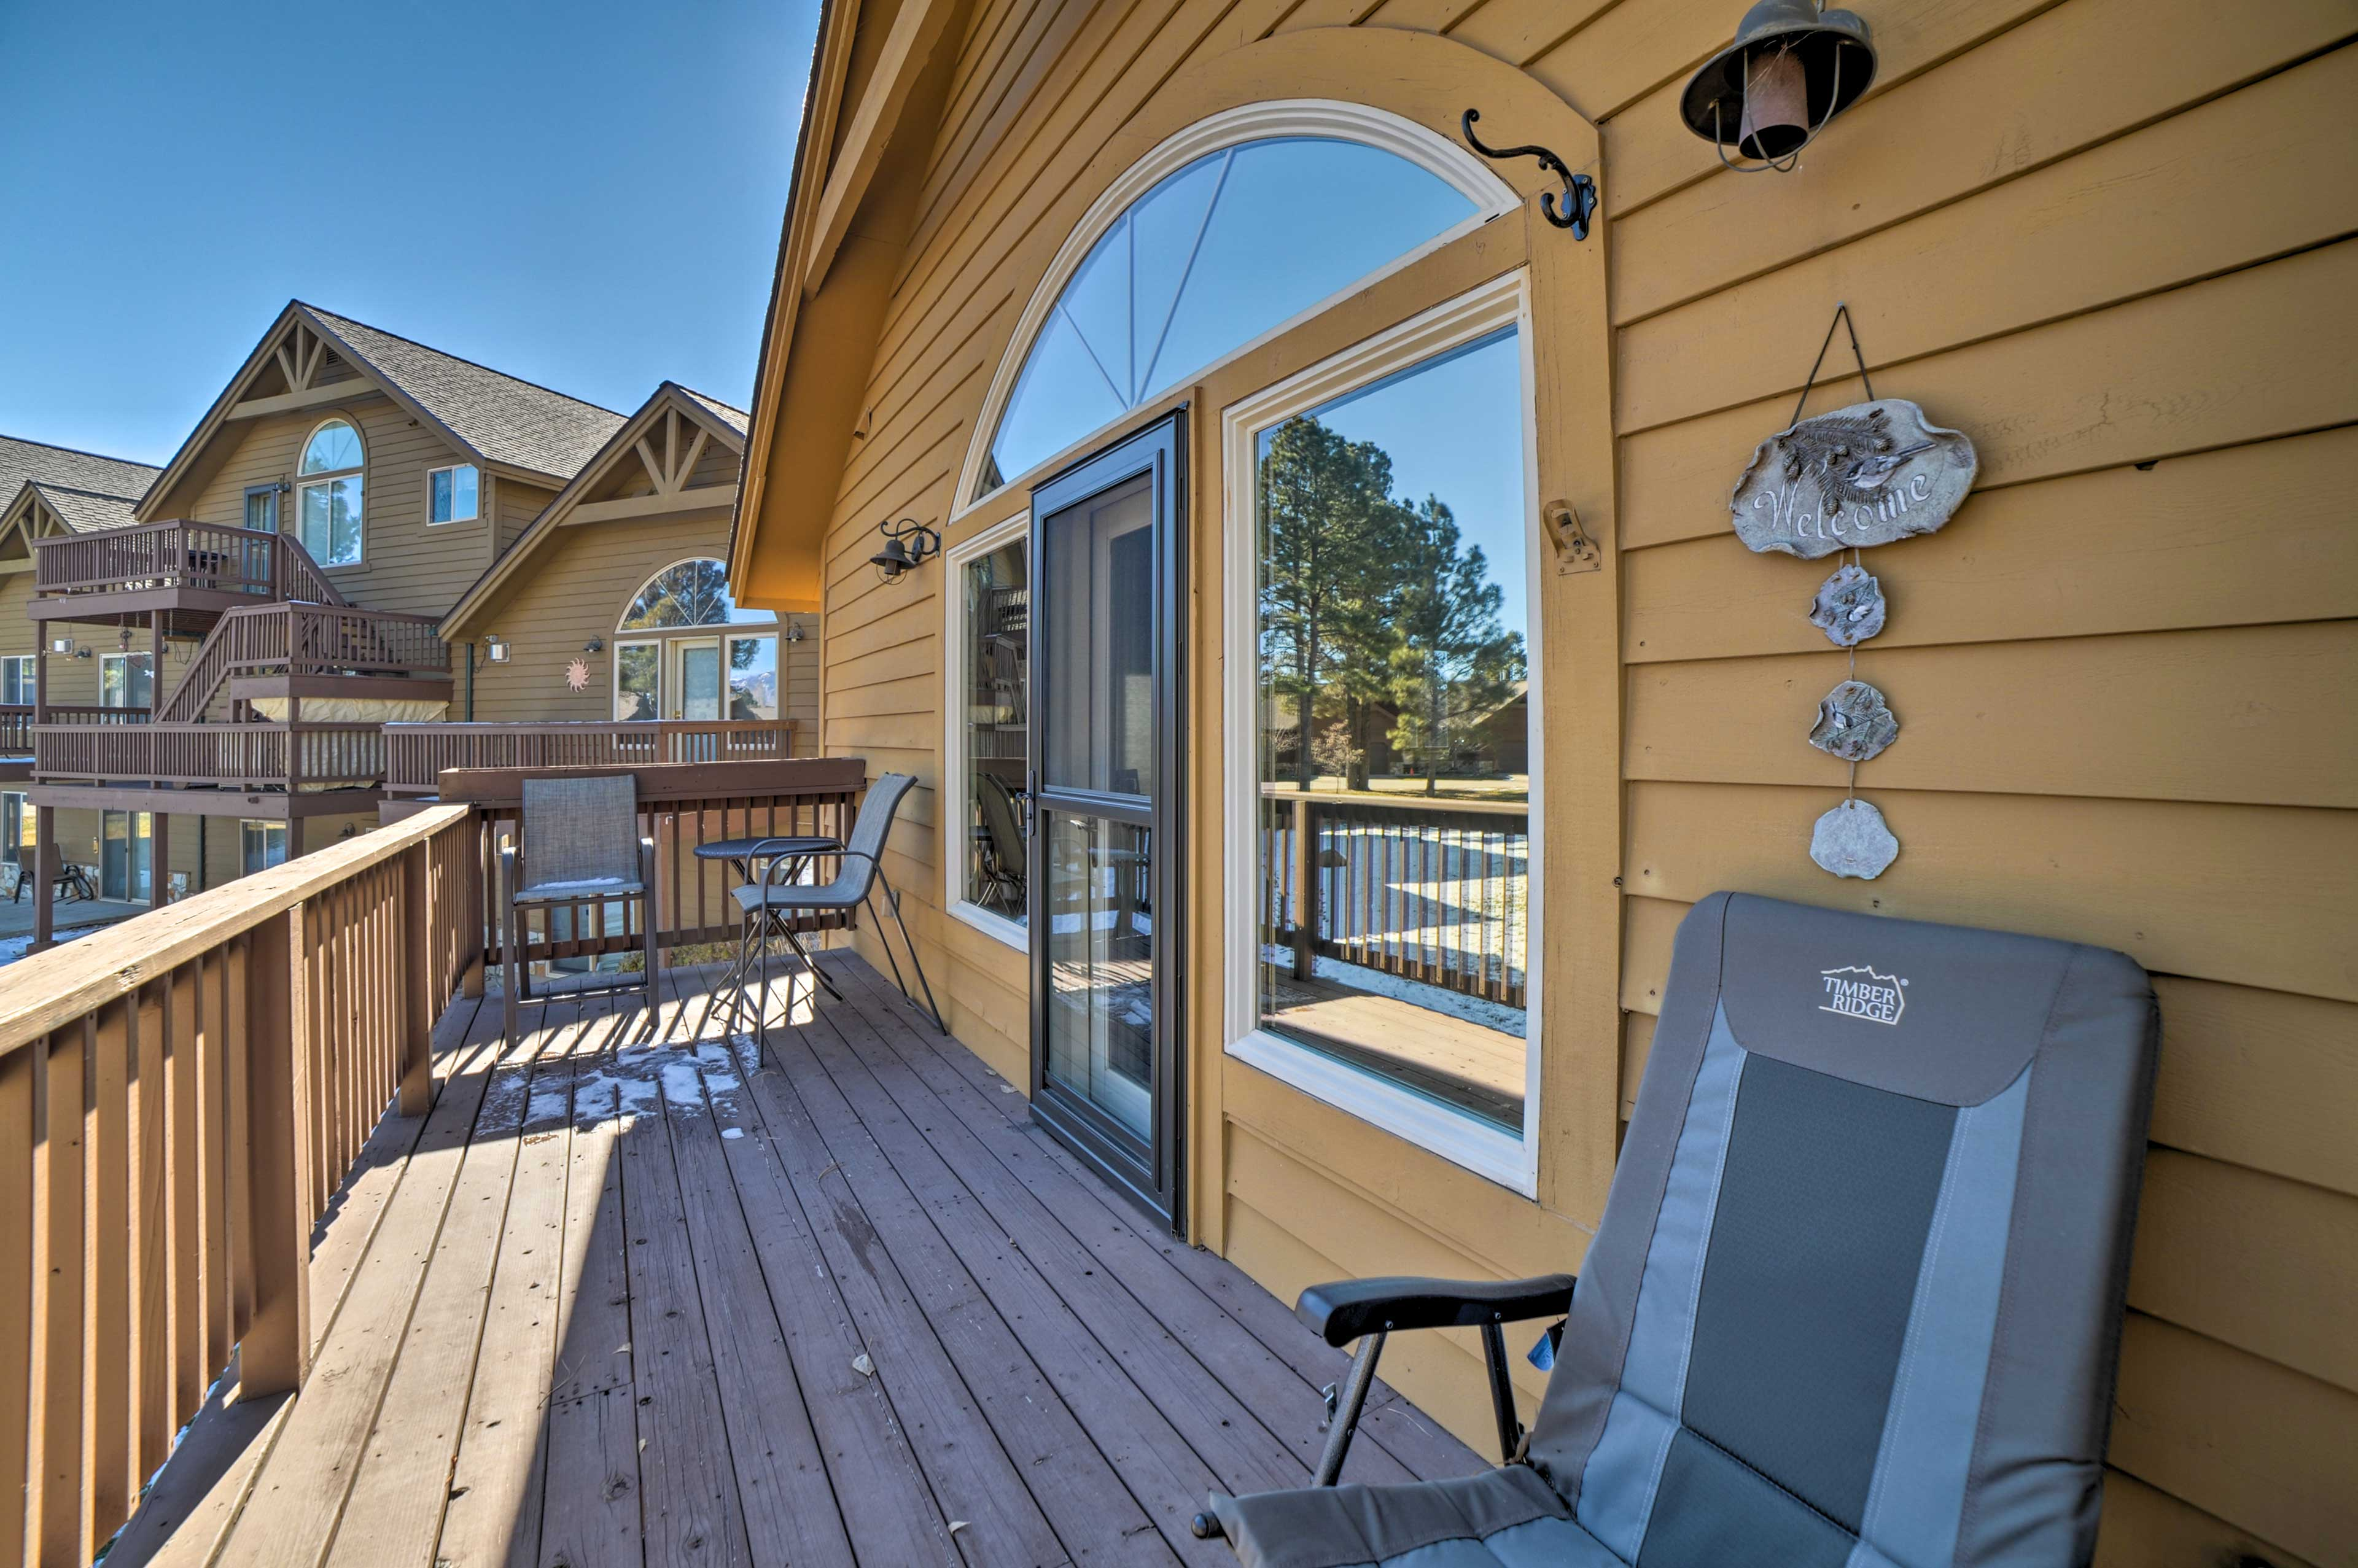 This vacation rental condo in Pagosa Springs is part of Whispering Pines.